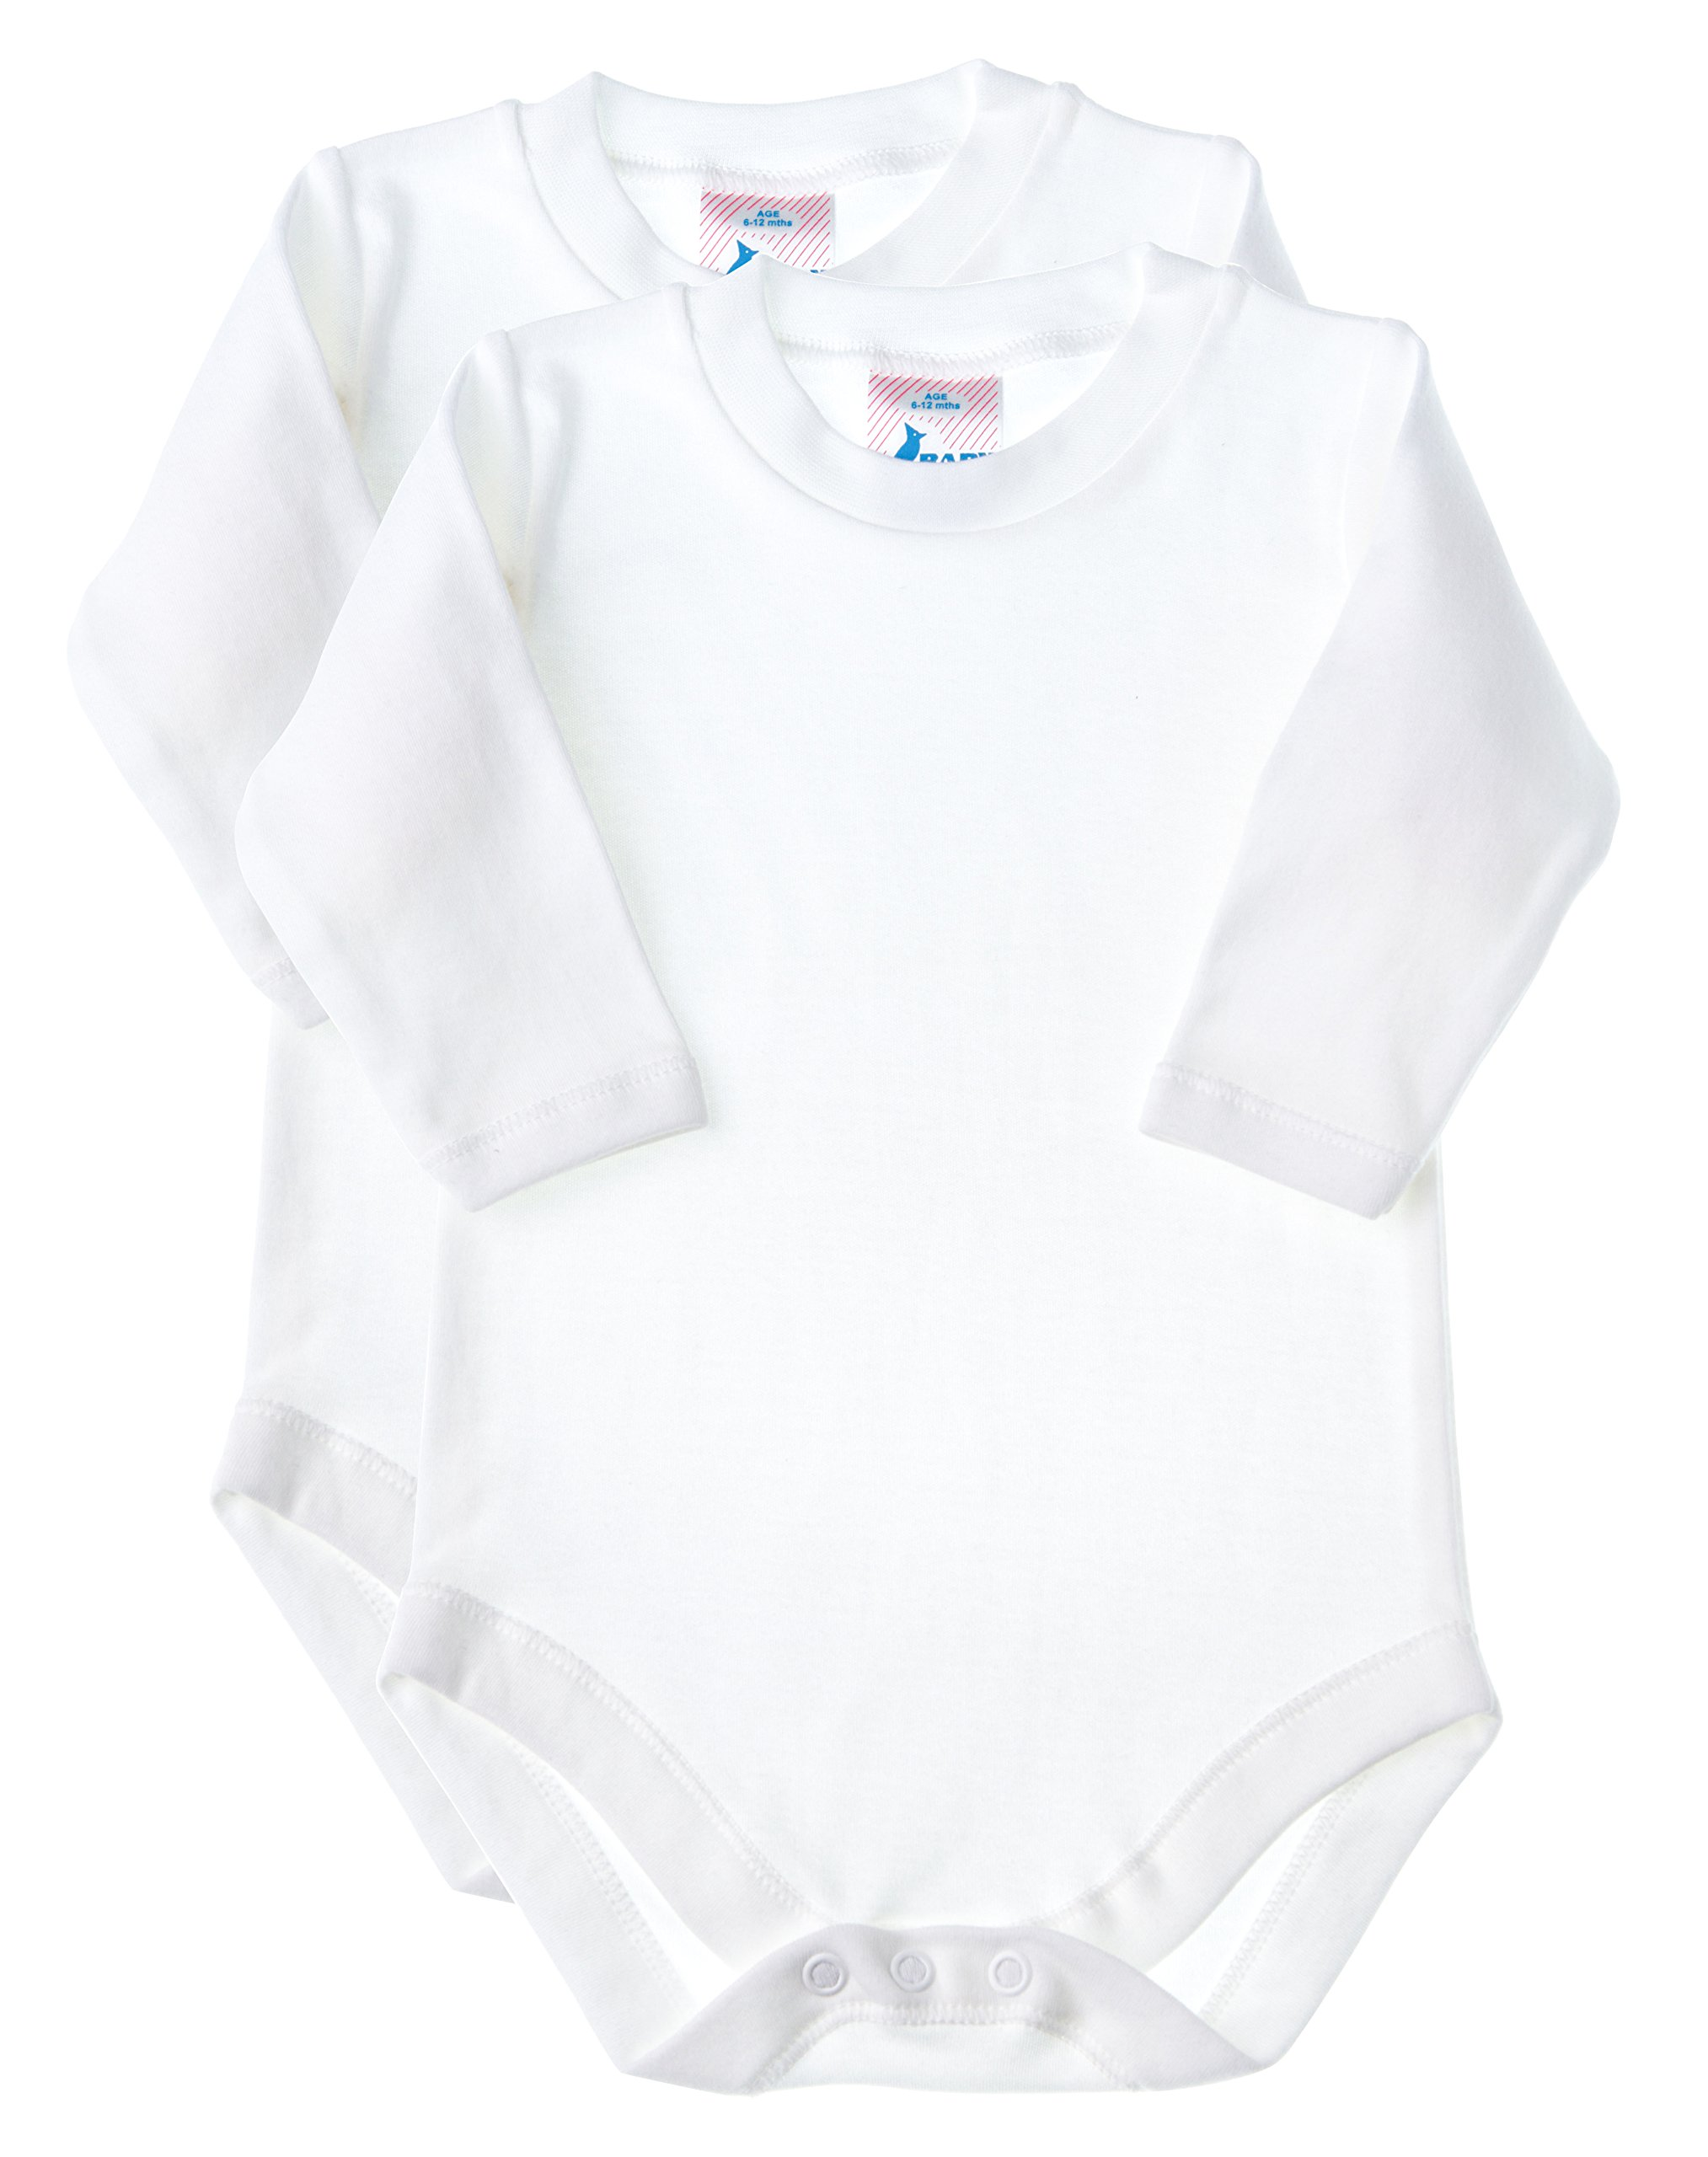 Baby Jay Soft Cotton Onesies, Long Sleeve Unisex Bodysuit, WSLR 18-24 2-Pack by Baby Jay (Image #1)